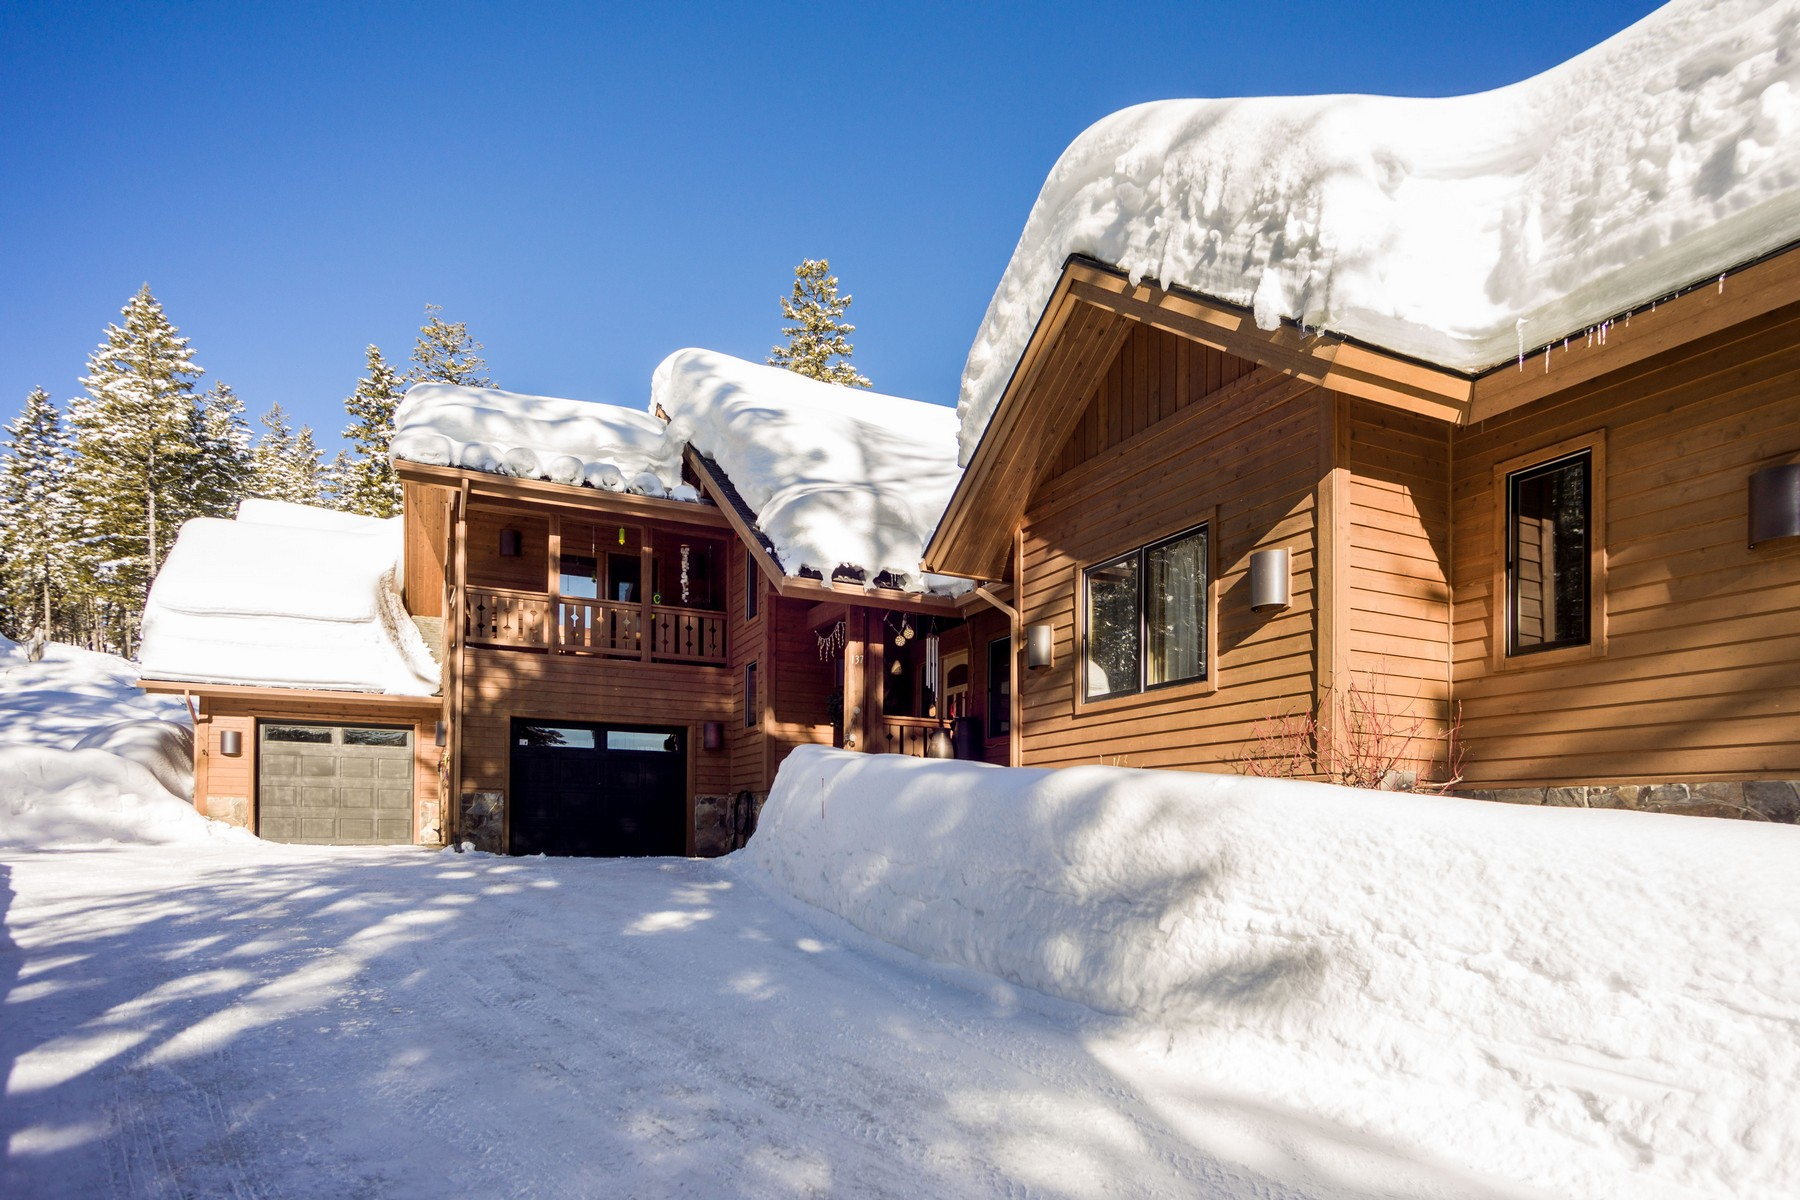 Casa Unifamiliar por un Venta en 137 Ridge Run Dr , Whitefish, MT 59937 137 Ridge Run Dr, Whitefish, Montana, 59937 Estados Unidos